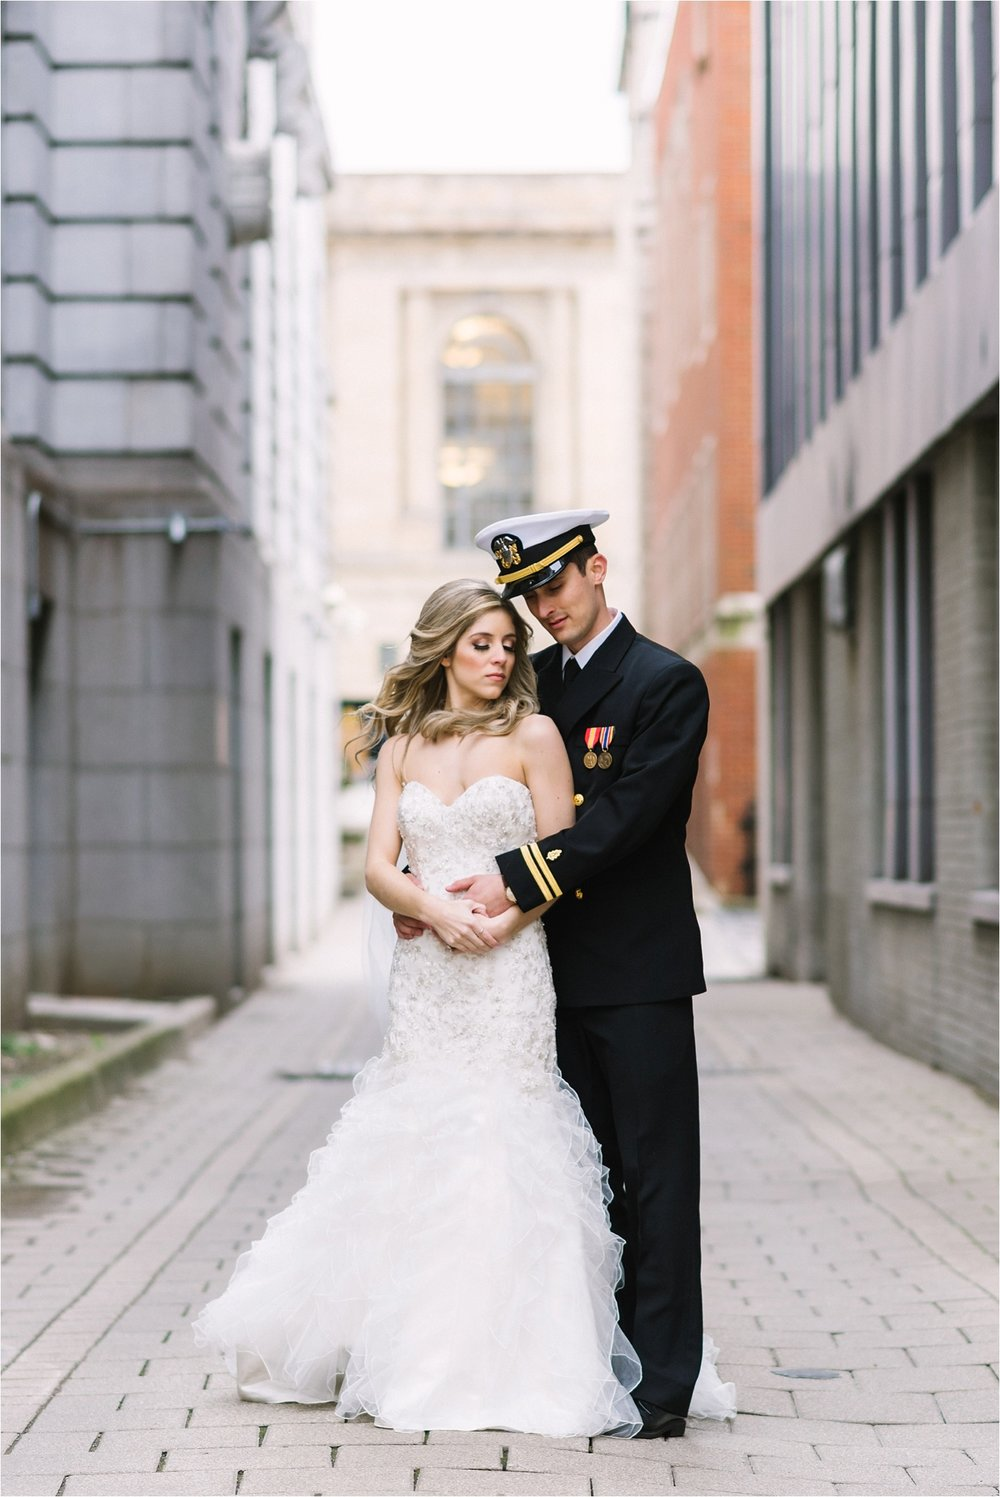 Downtown Youngstown wedding photos are so romantic.